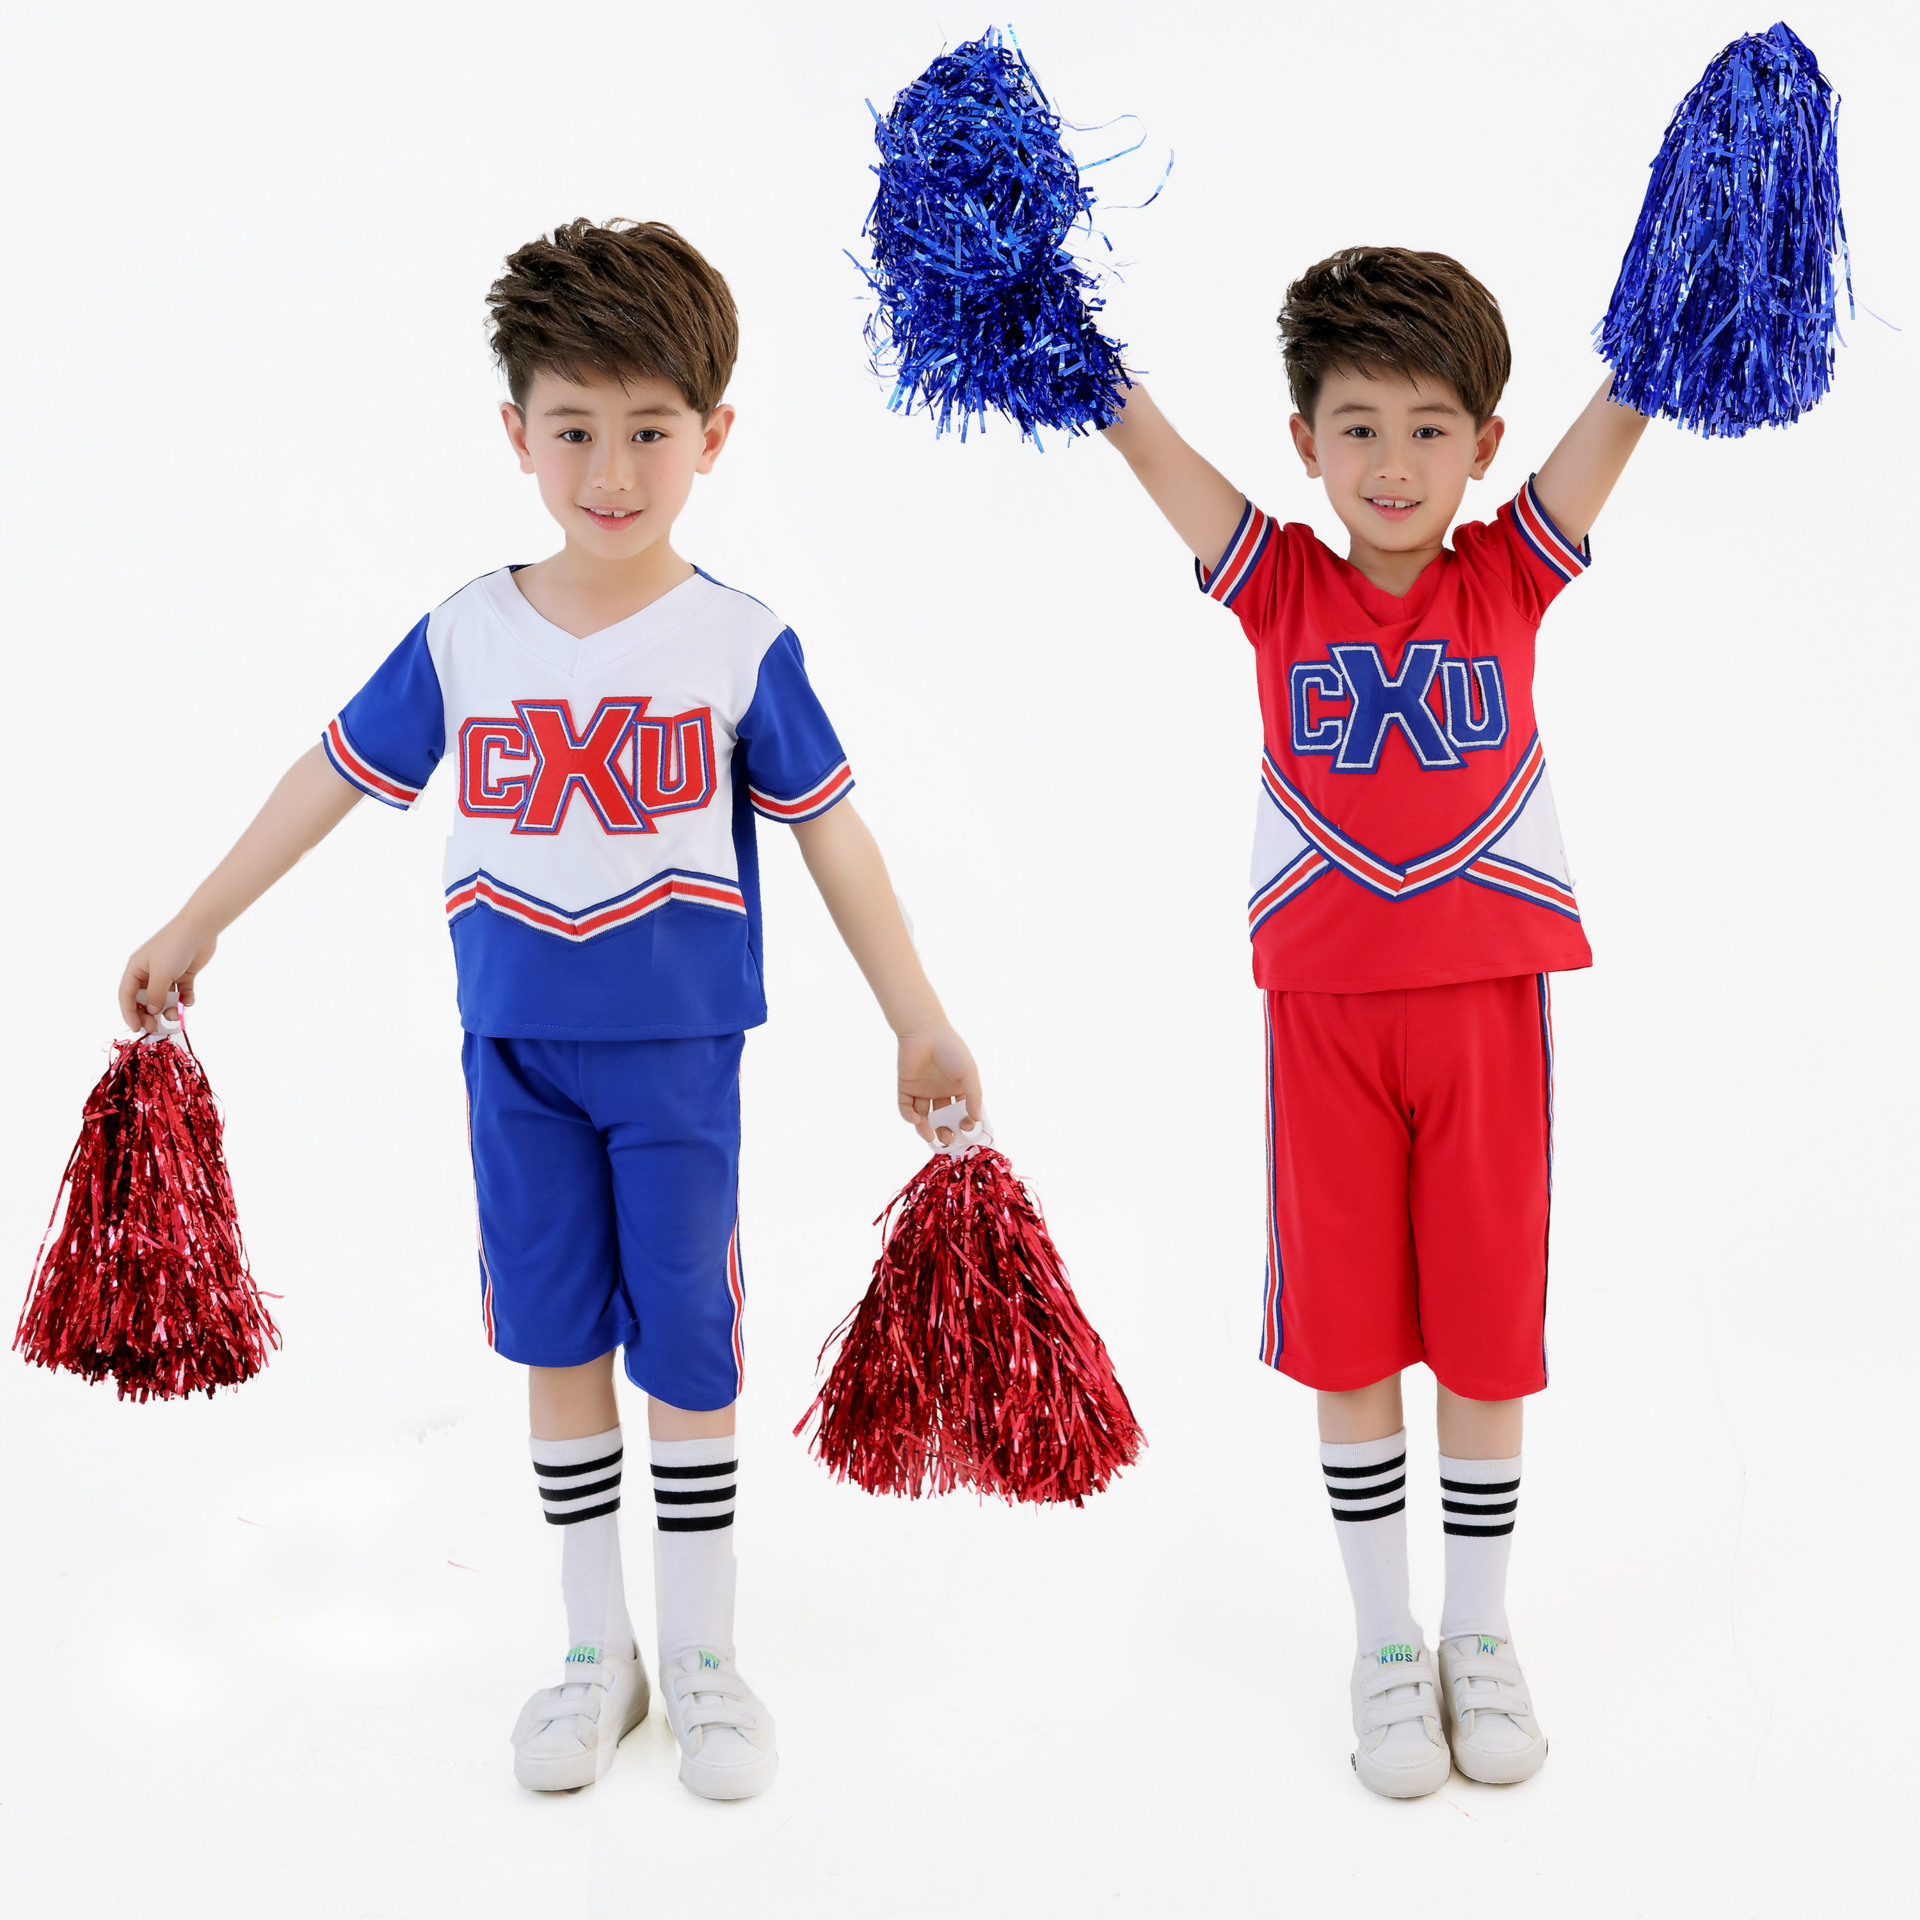 Toddler Cheerleader Uniforms